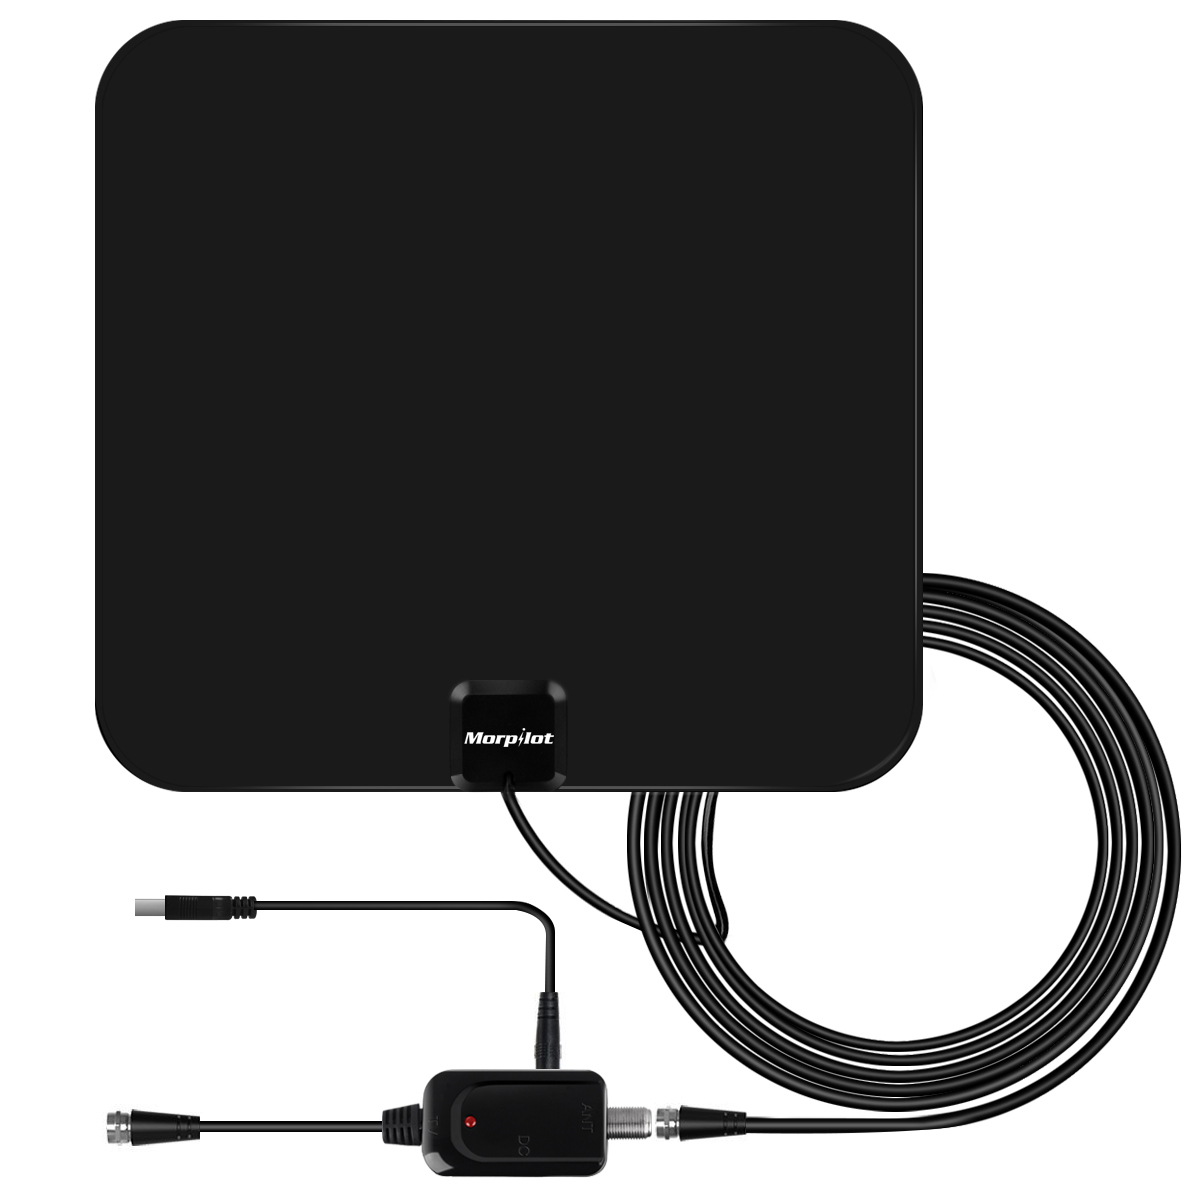 Morpilot TV Antenna,Indoor Amplified TV Antenna 60 Mile Range with Detachable Amplifier Signal Booster (60 Mile)